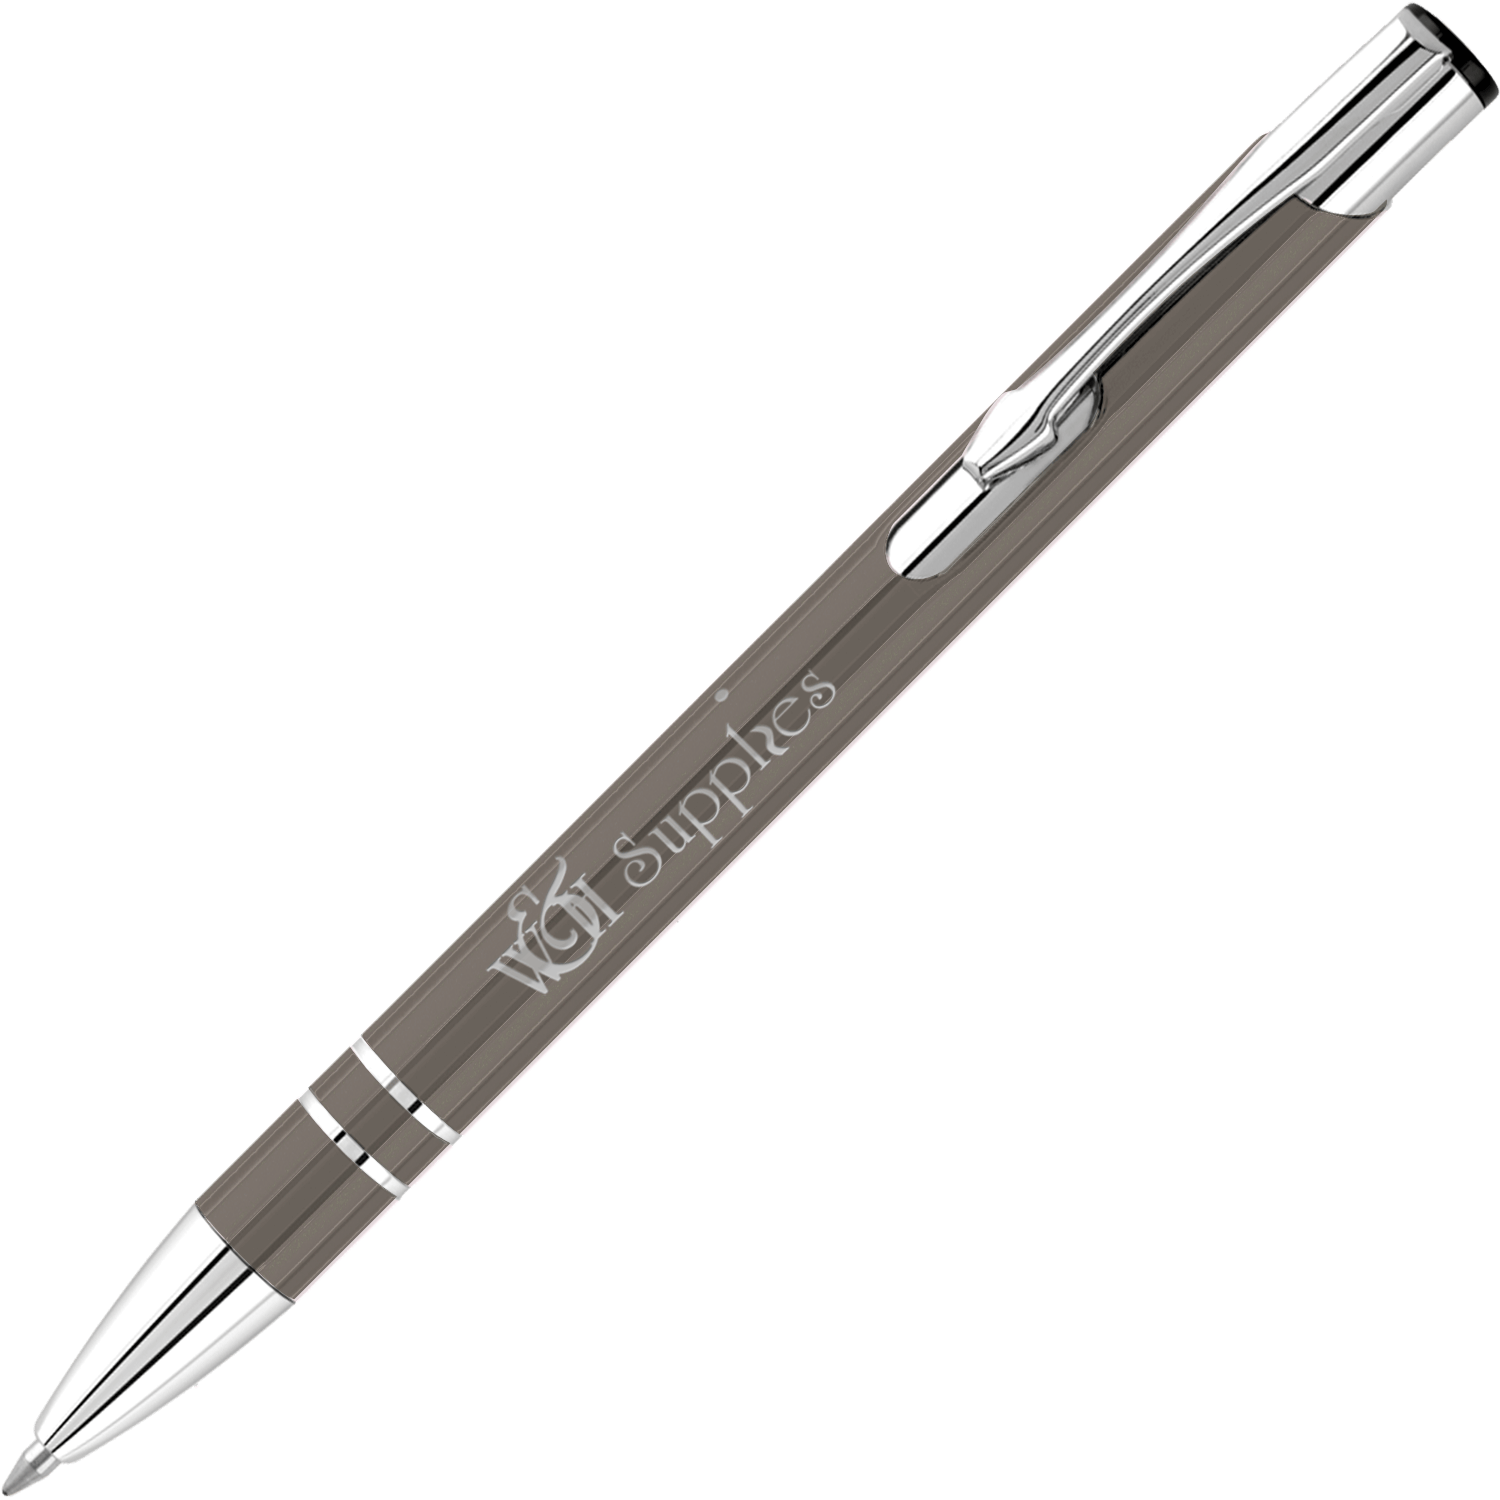 Engraved Metal Elite Pen